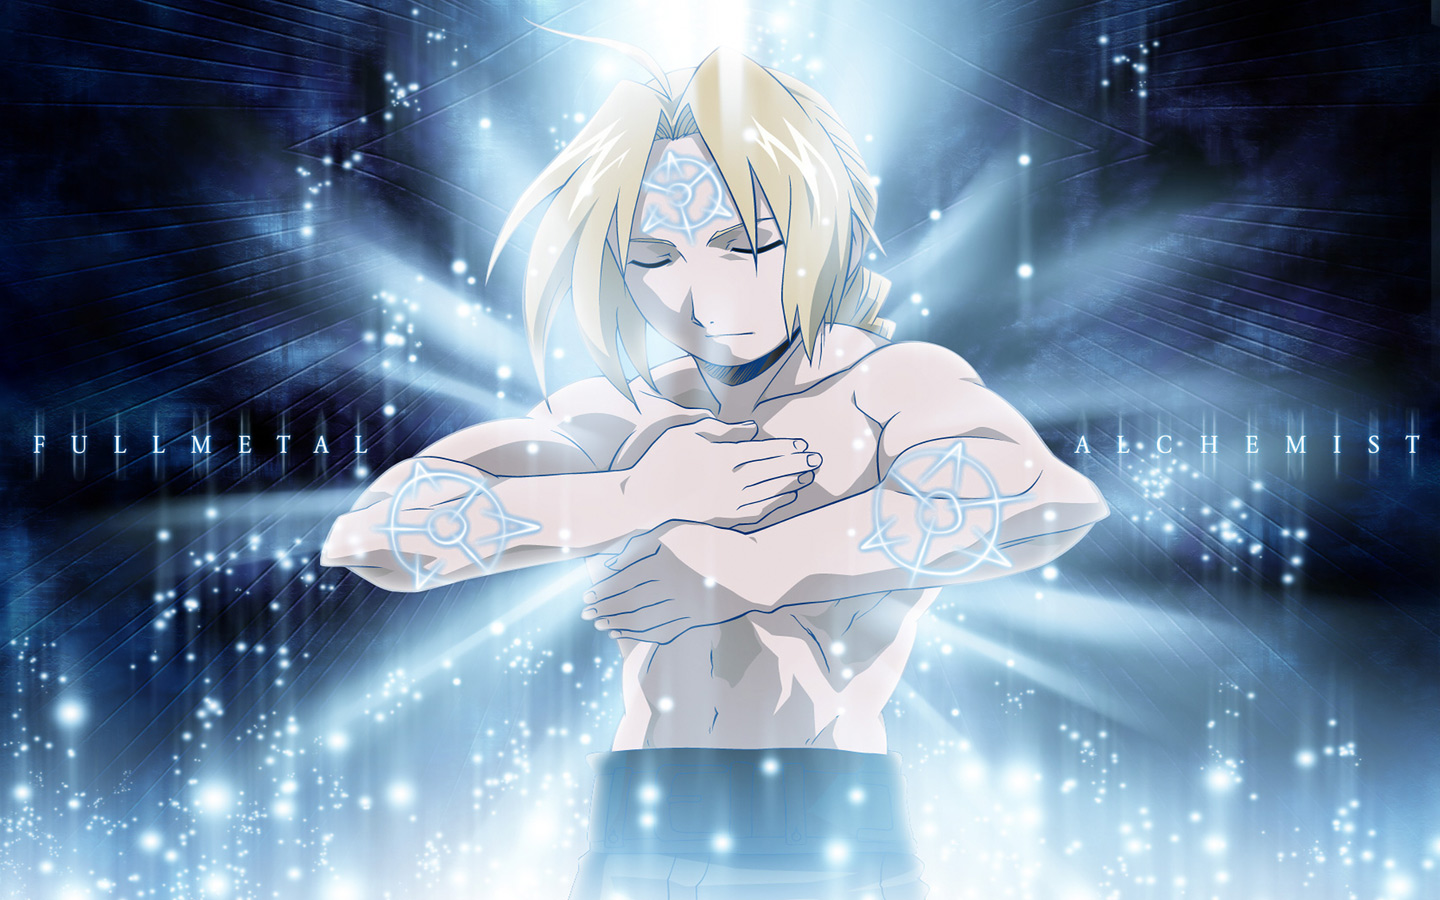 Full Metal Alchemist HD & Widescreen Wallpaper 0.246343141910184